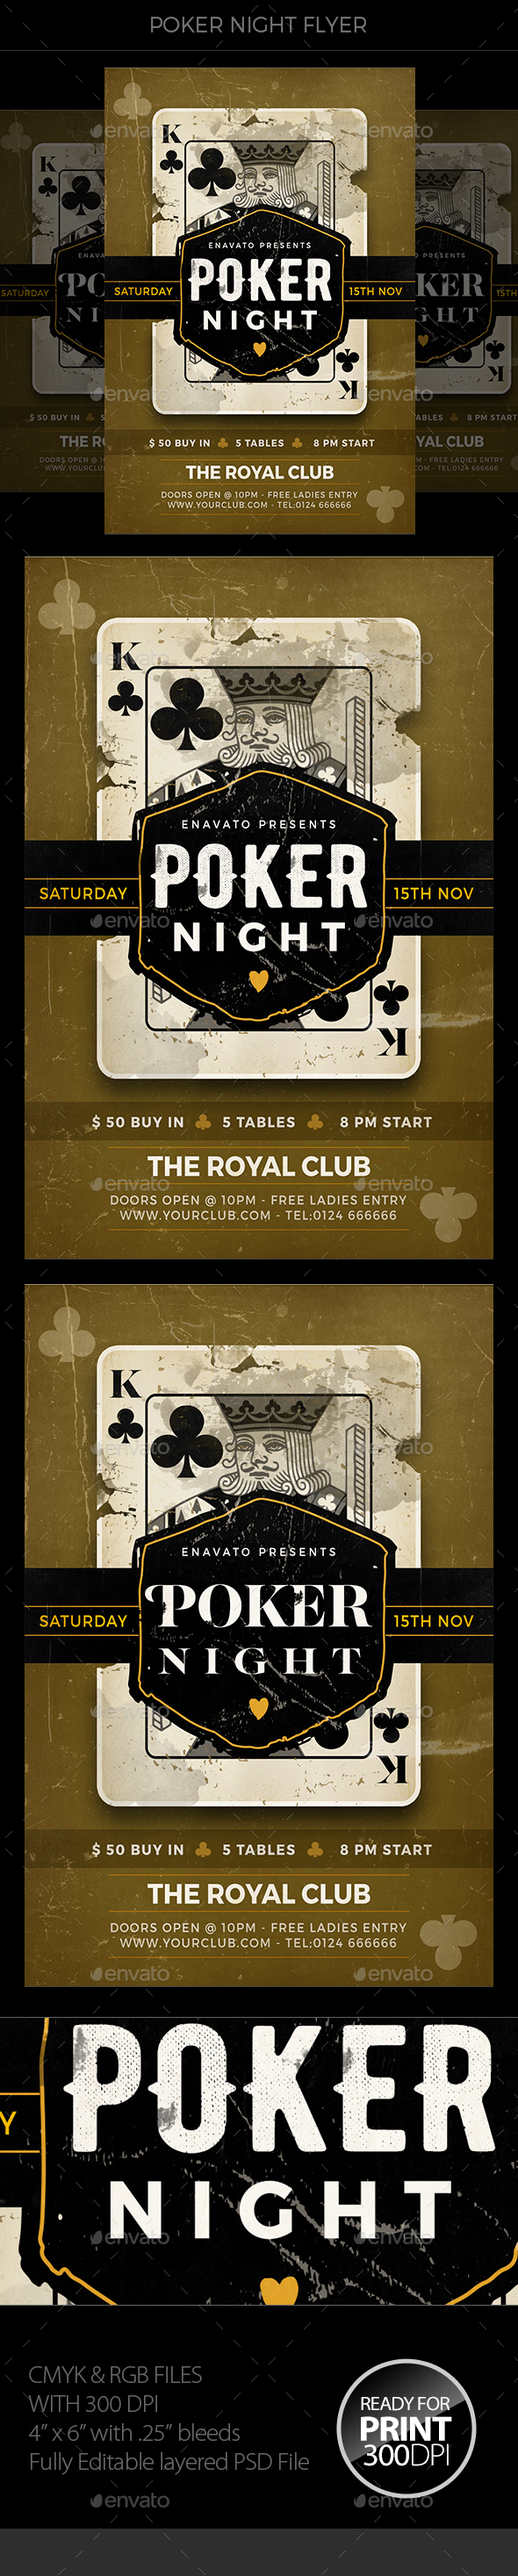 Poker Night Flyer - Events Flyers